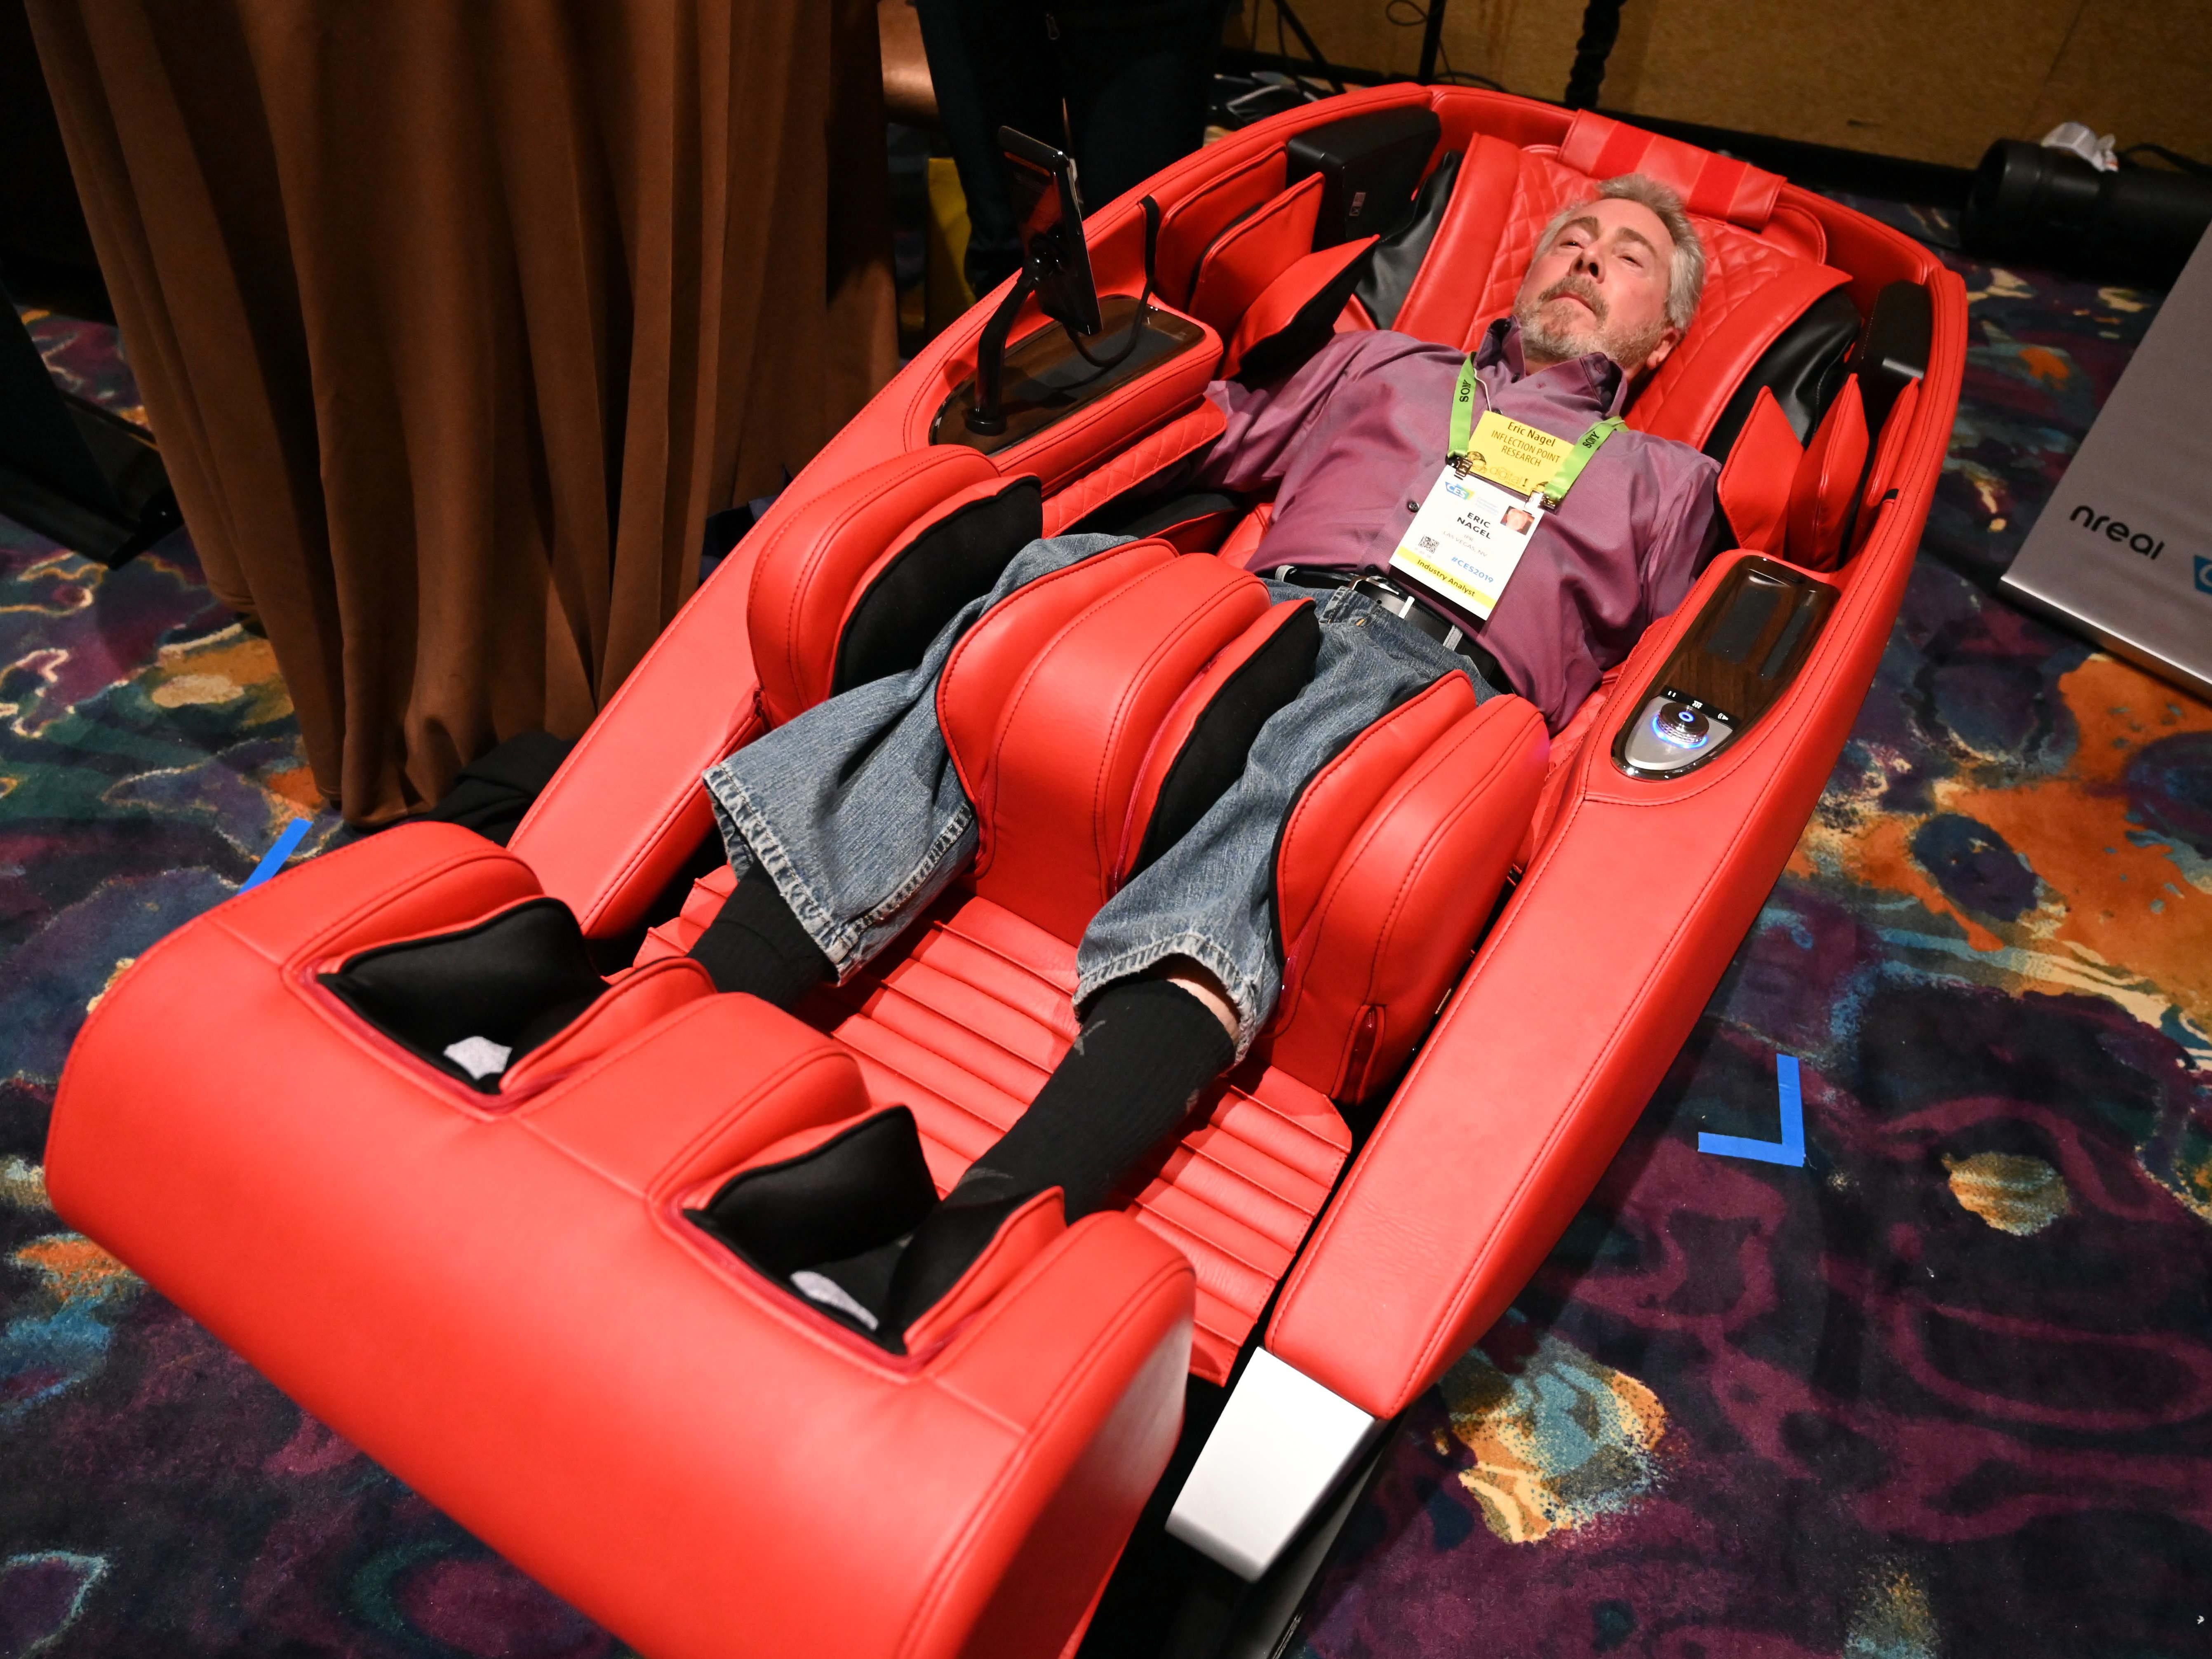 Eric Nagel relaxes in the Super Novo massage chair at the Human Touch booth.